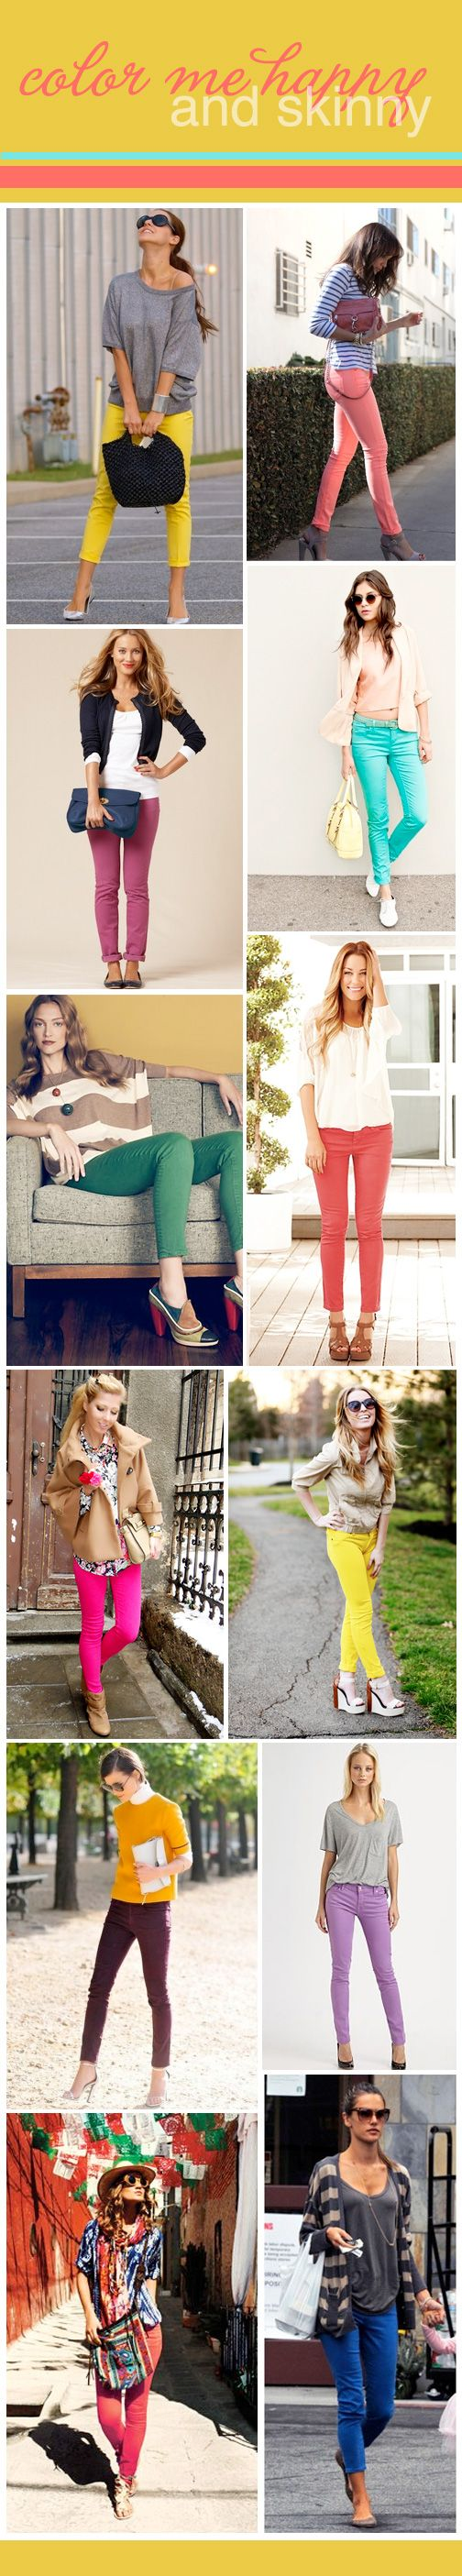 color skinny outfit ideas.